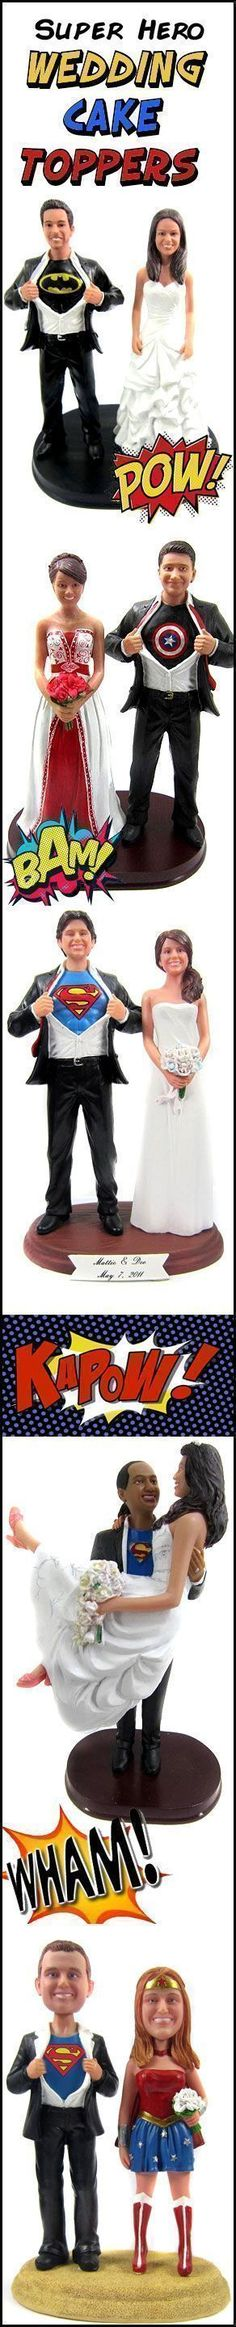 Custom Super Hero Wedding Cake Toppers are sculpted to look like the bride and groom with your choice of hidden identity!